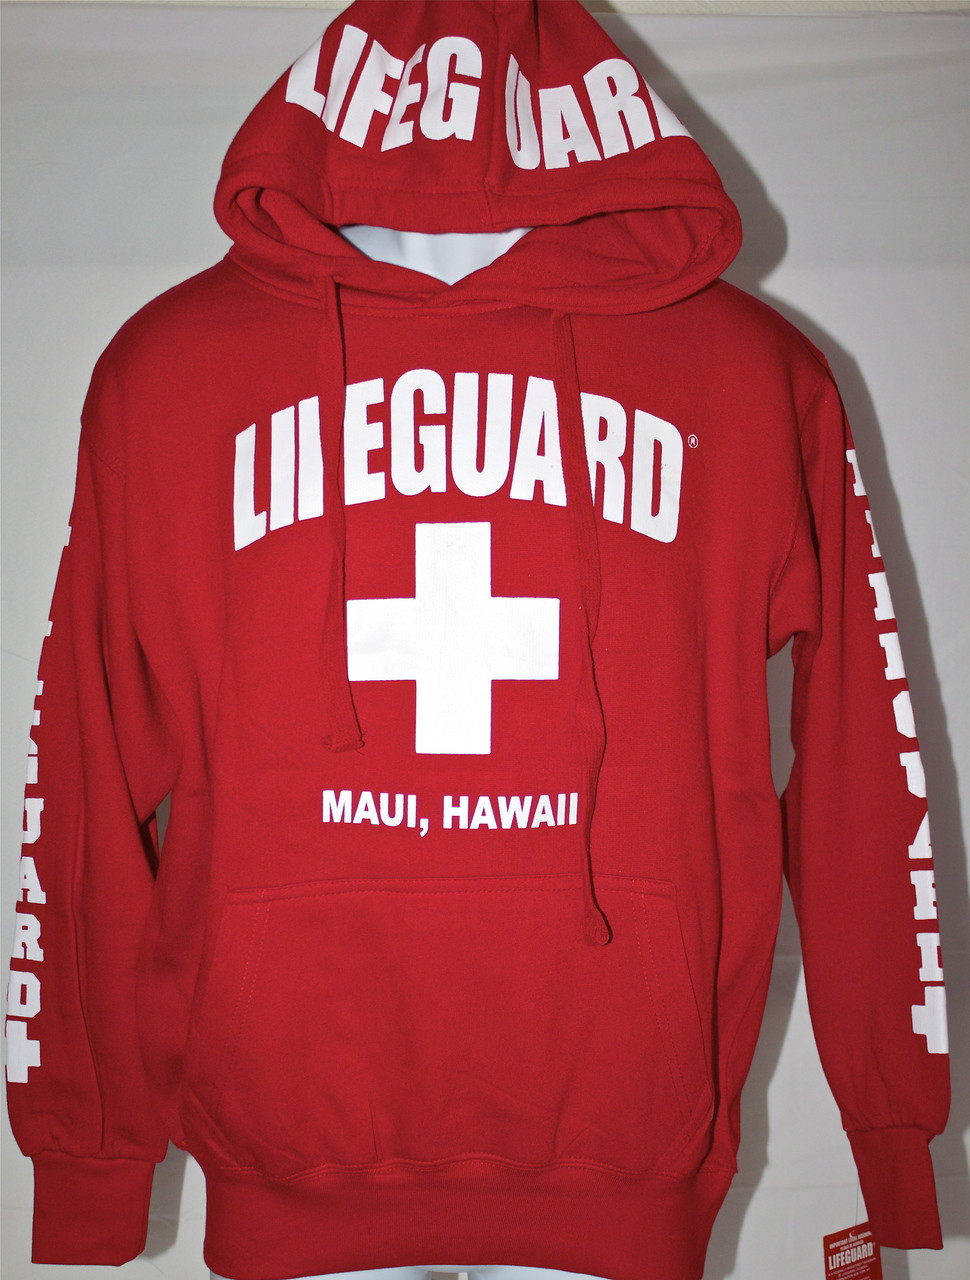 03793318d9681 Lifeguard Hoodie in Red (Unisex Sizing) - (808)661-7828 Maui s Beach House